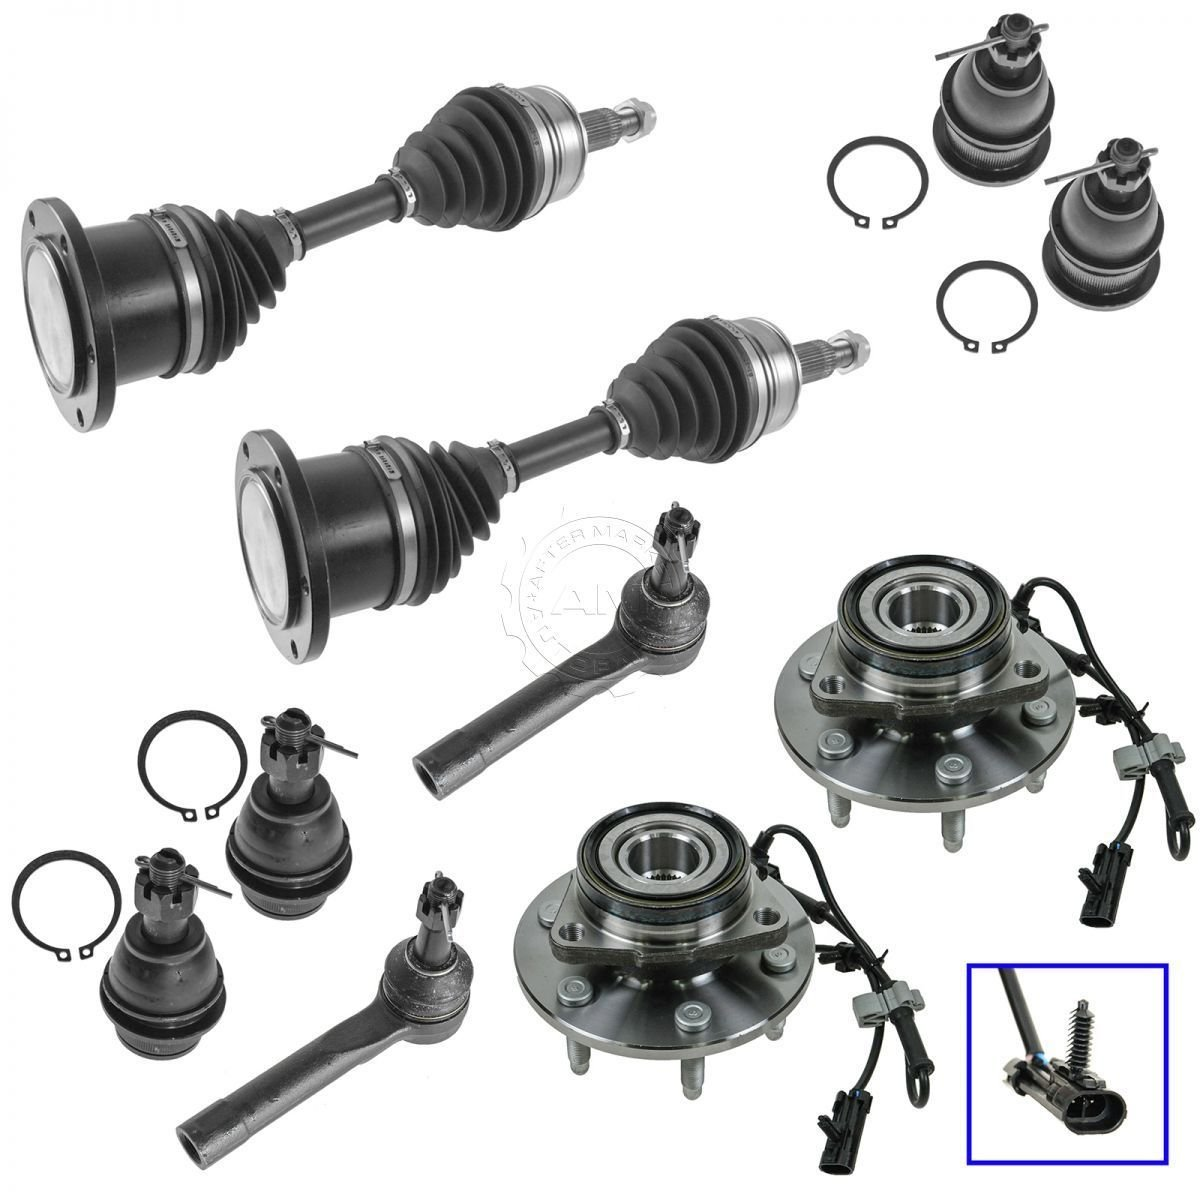 Hub Assembly Axle Ball Joint Tie Rod End Kit Set Of 10 For